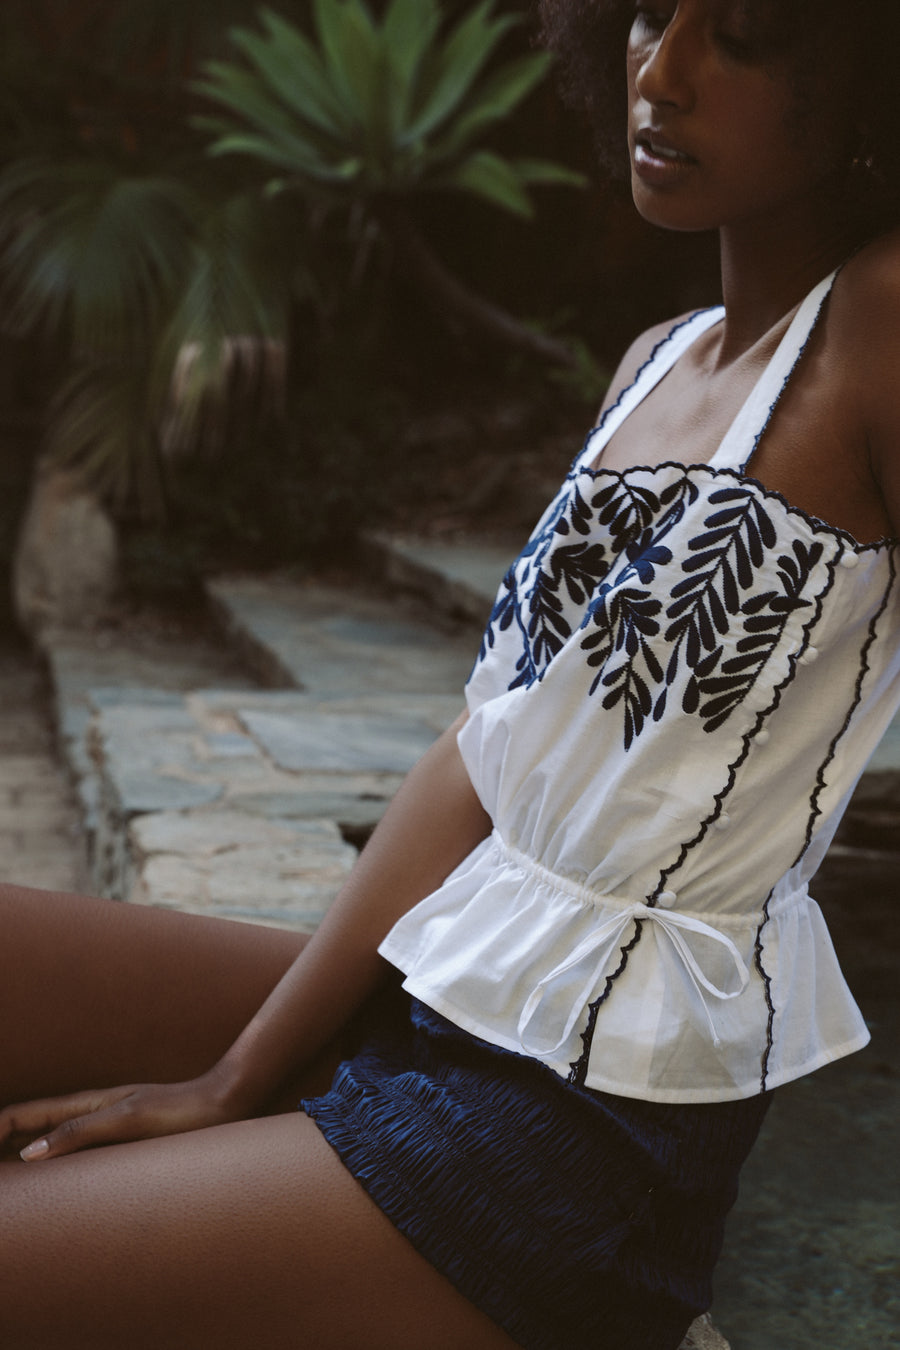 Lightweight 100% pima cotton camisole in white with indigo blue embroidered petals, delicate side covered buttons, and an adjustable drawstring waist.